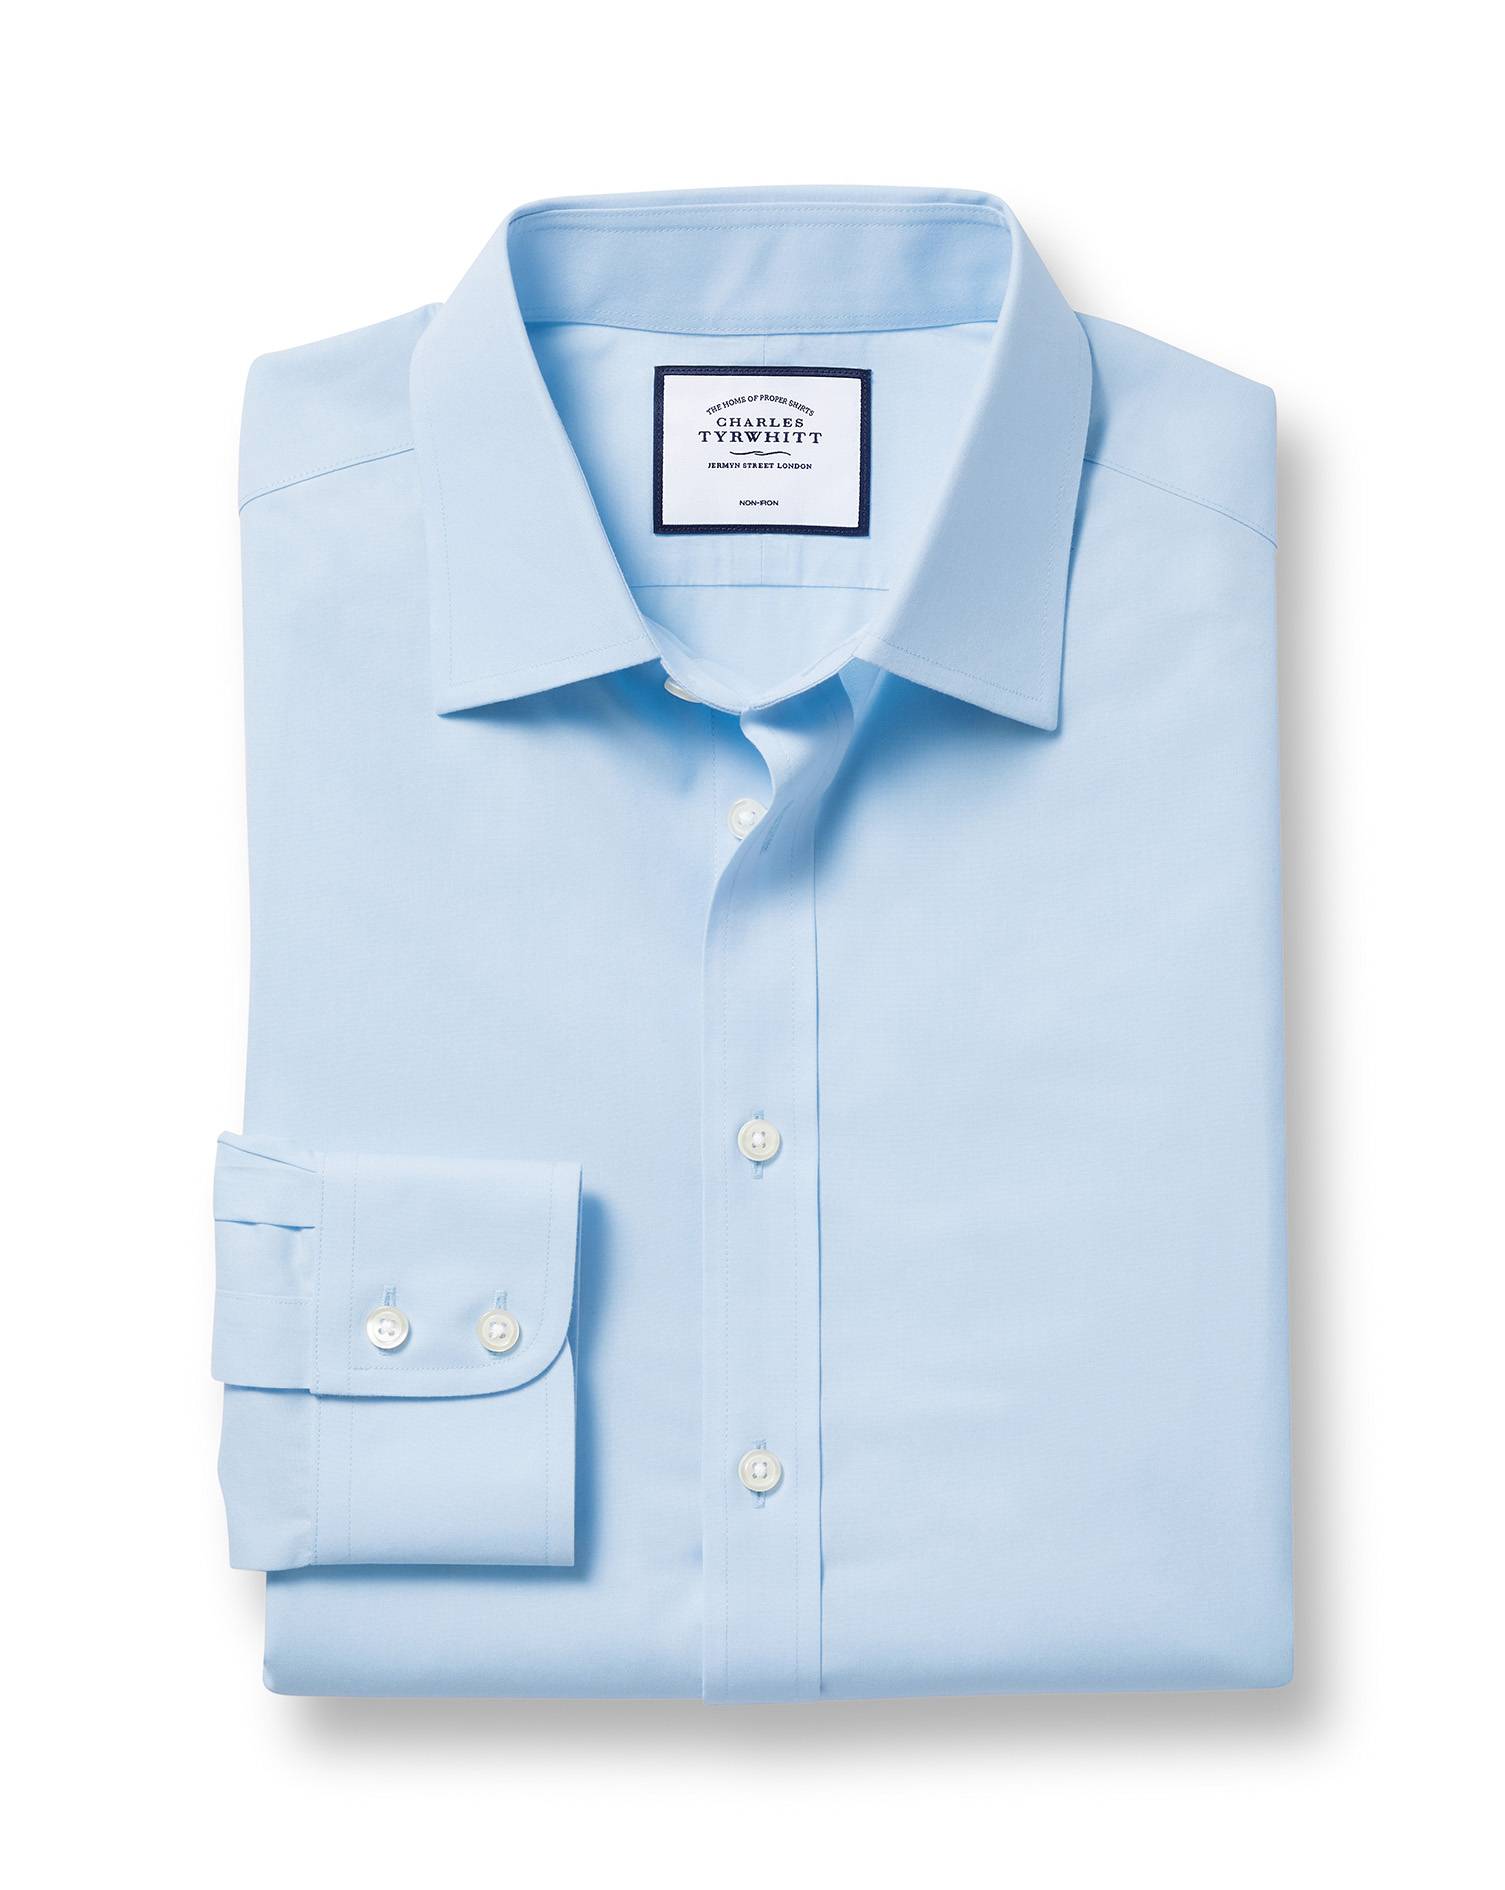 Classic Fit Non-Iron Poplin Sky Blue Cotton Formal Shirt Single Cuff Size 16.5/35 by Charles Tyrwhit